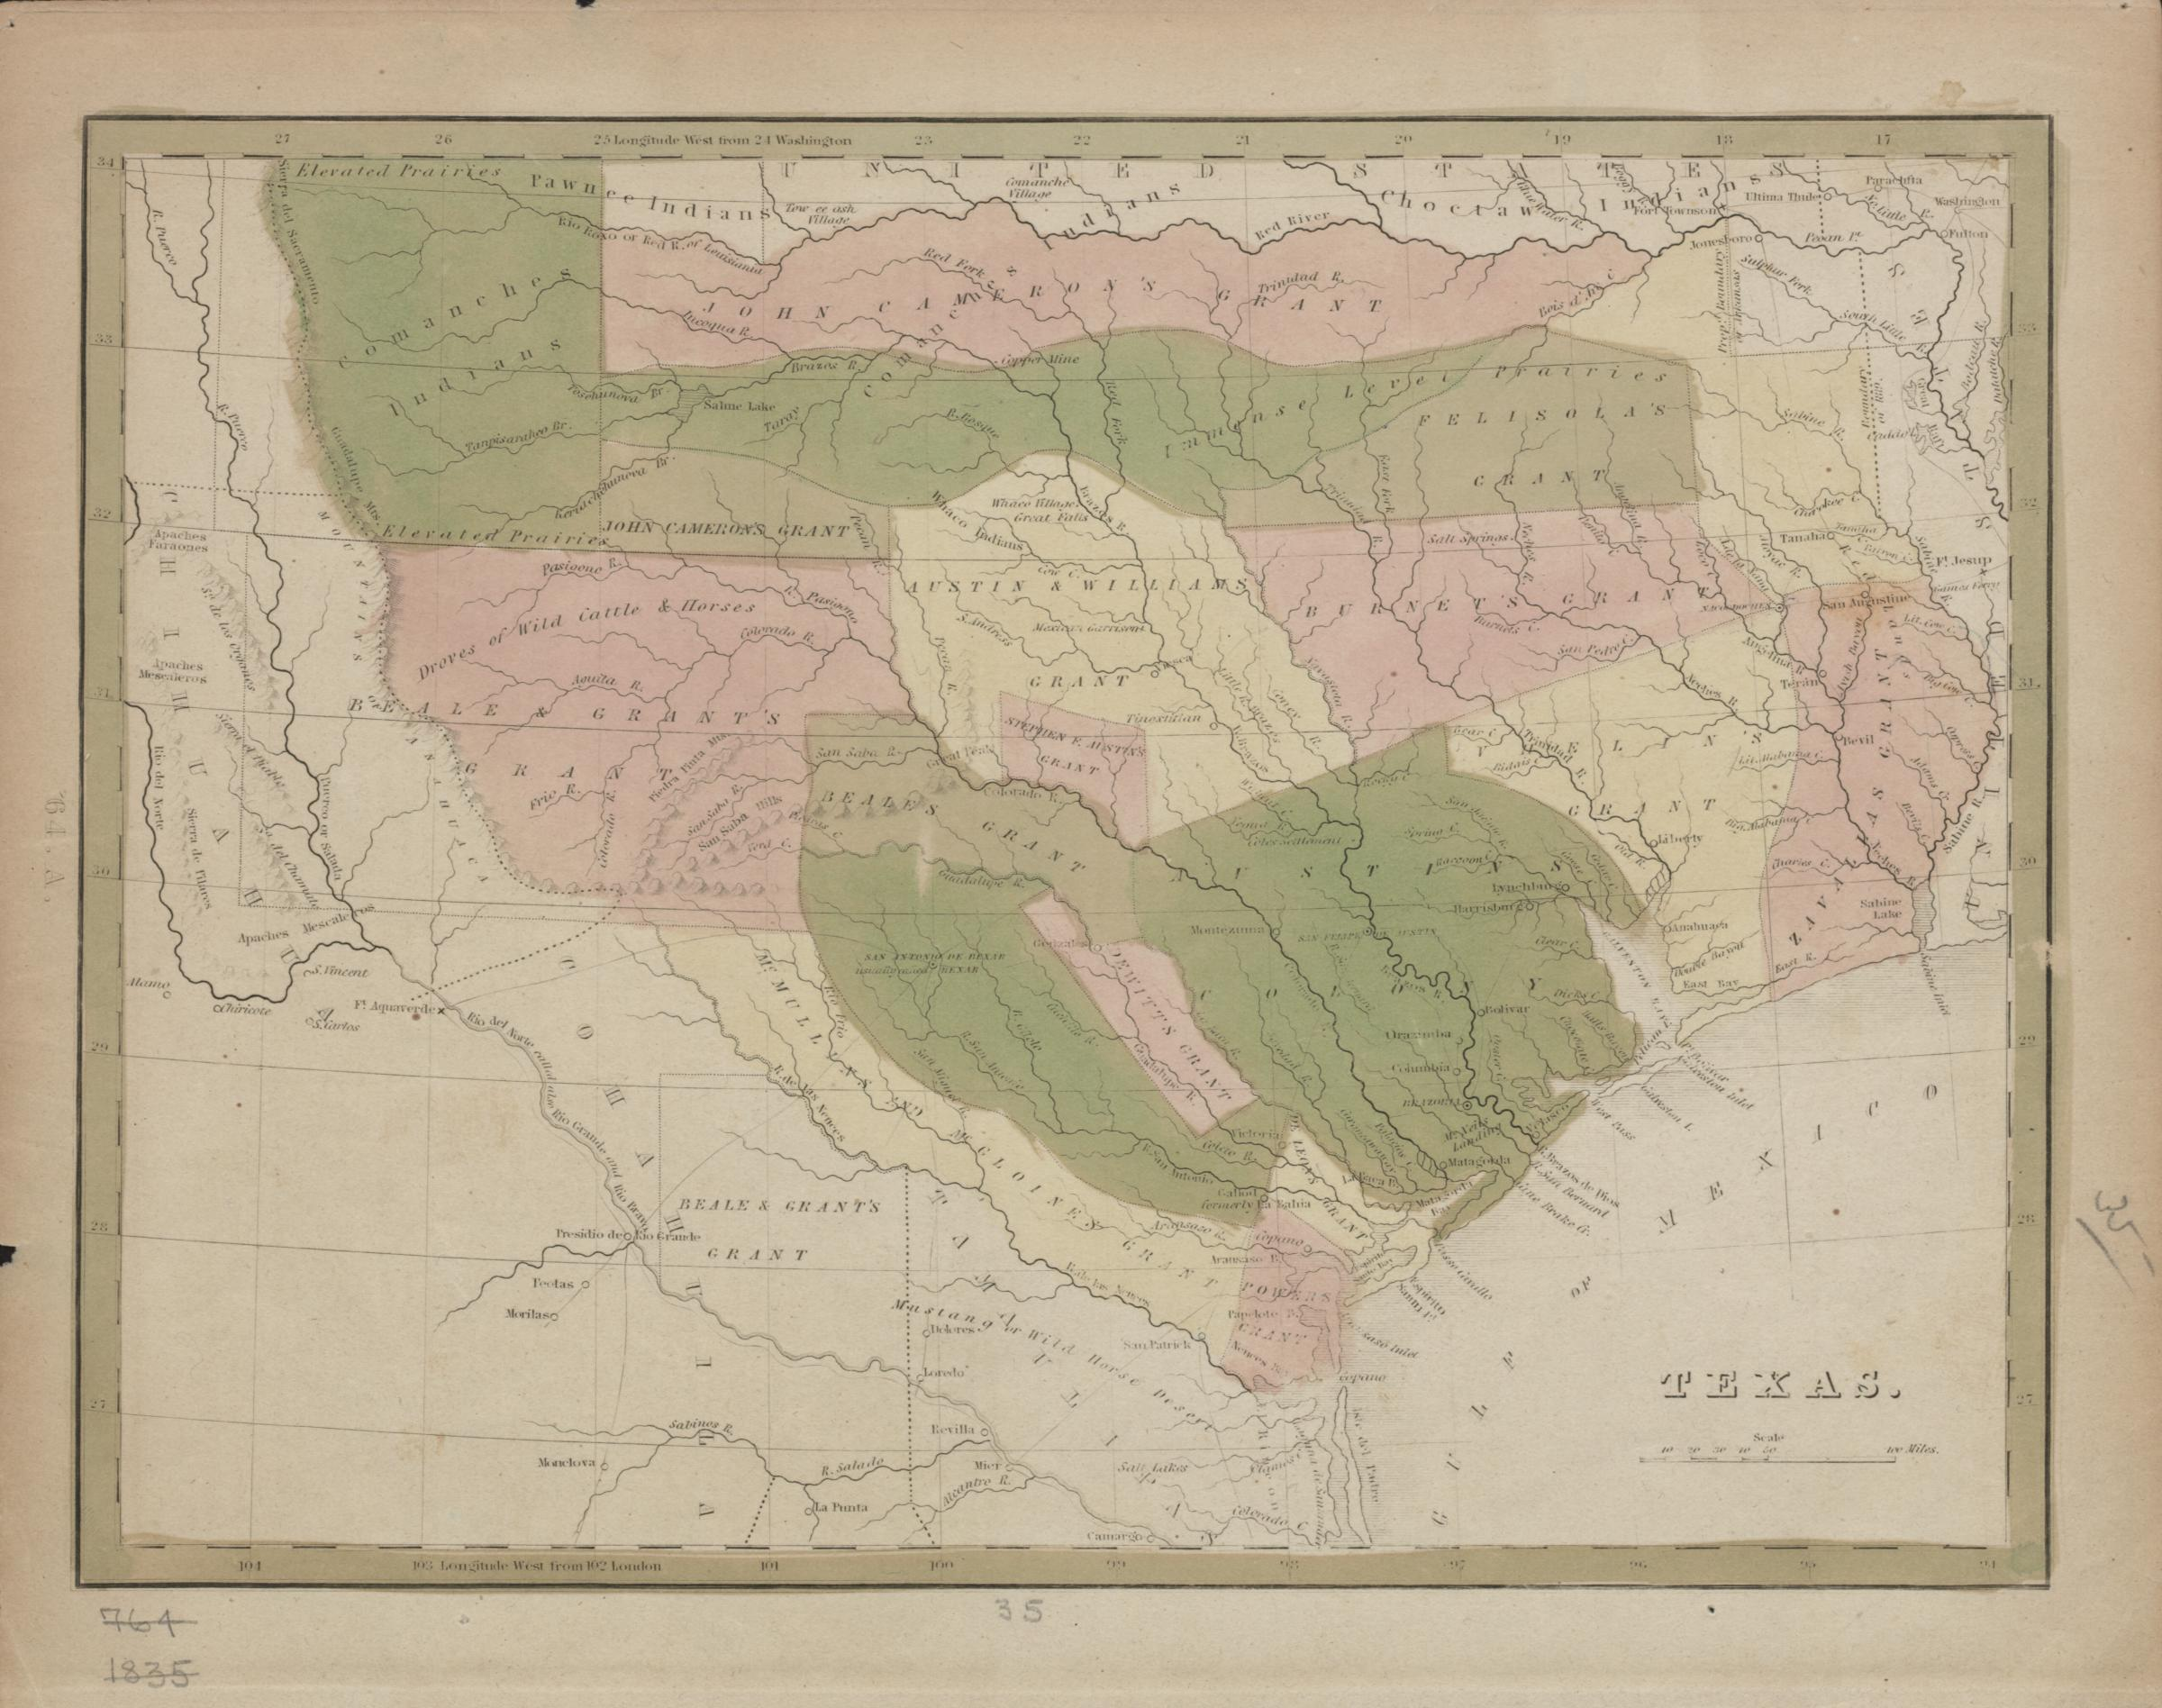 An 1835 map of Texas showing major land grants and Native American